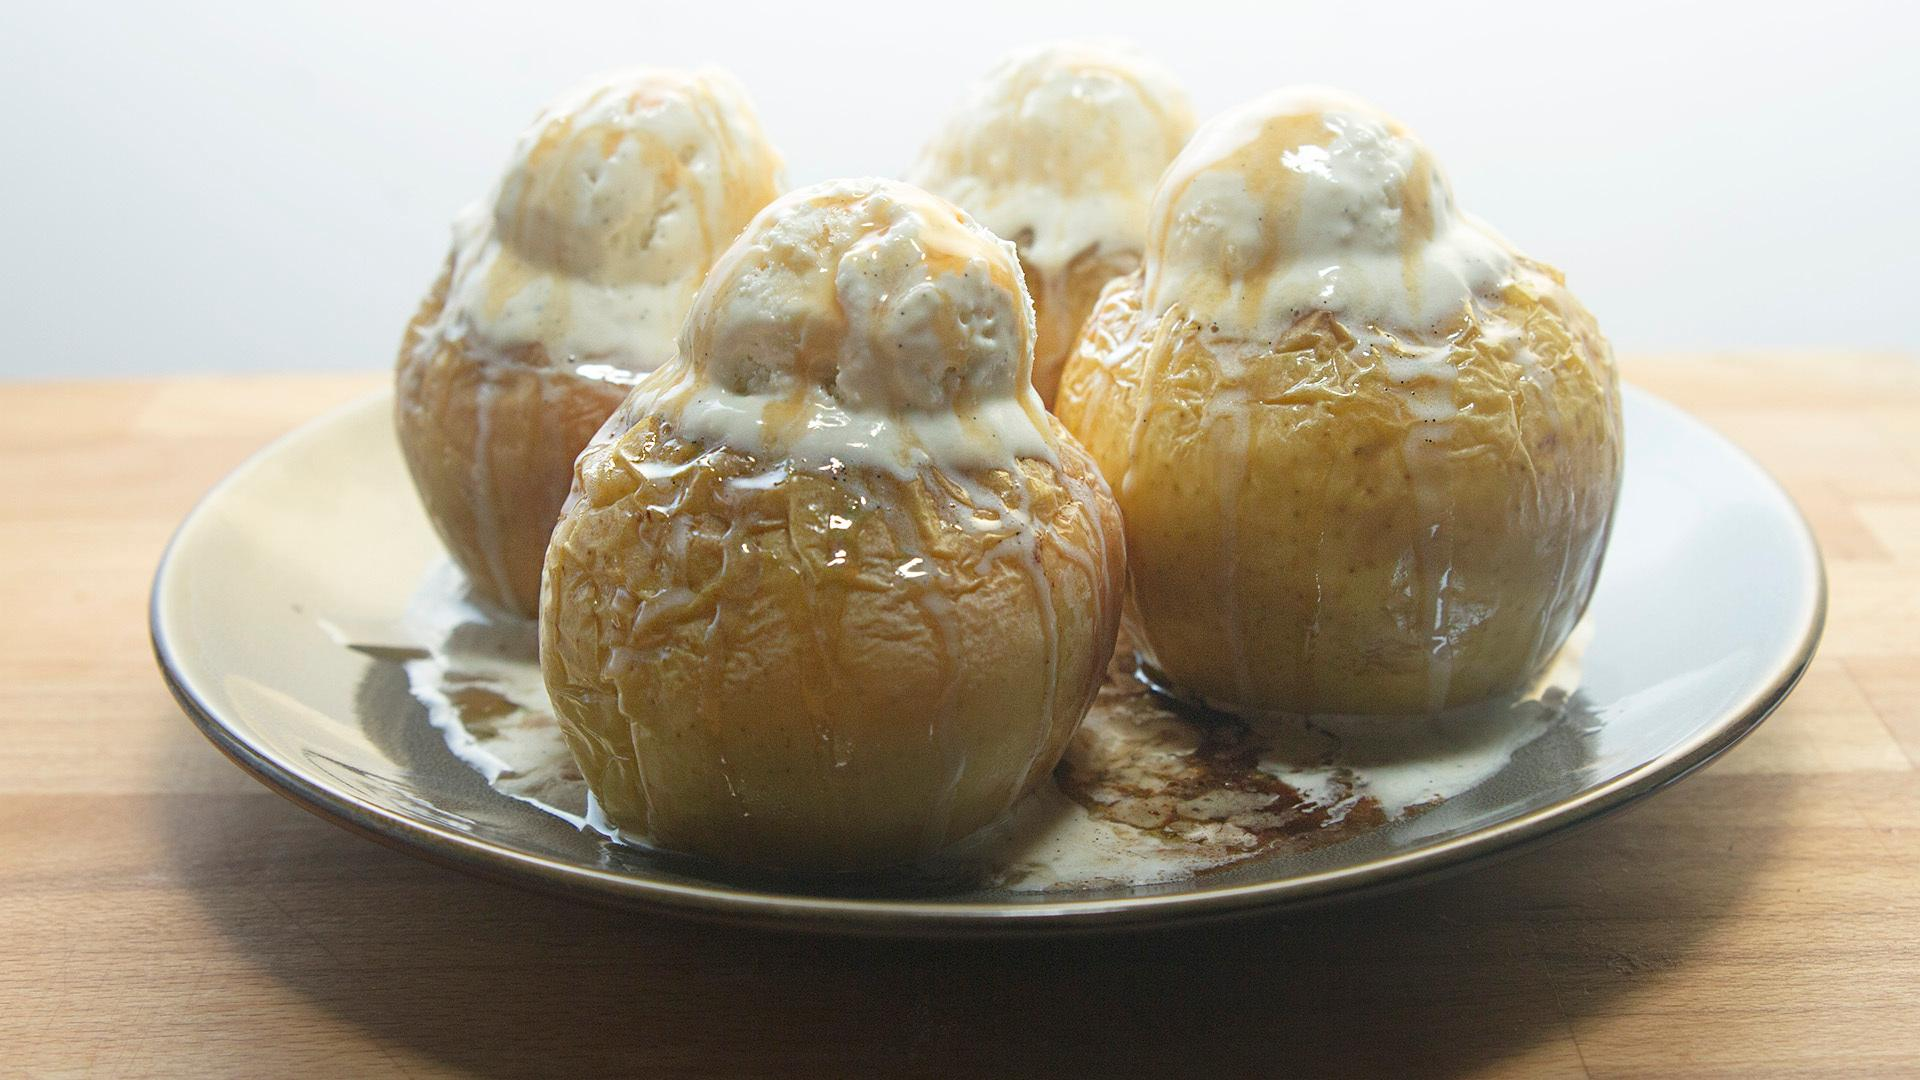 Baked Apples with Ice Cream, Like Apple Pie Ala Mode Without the Crust